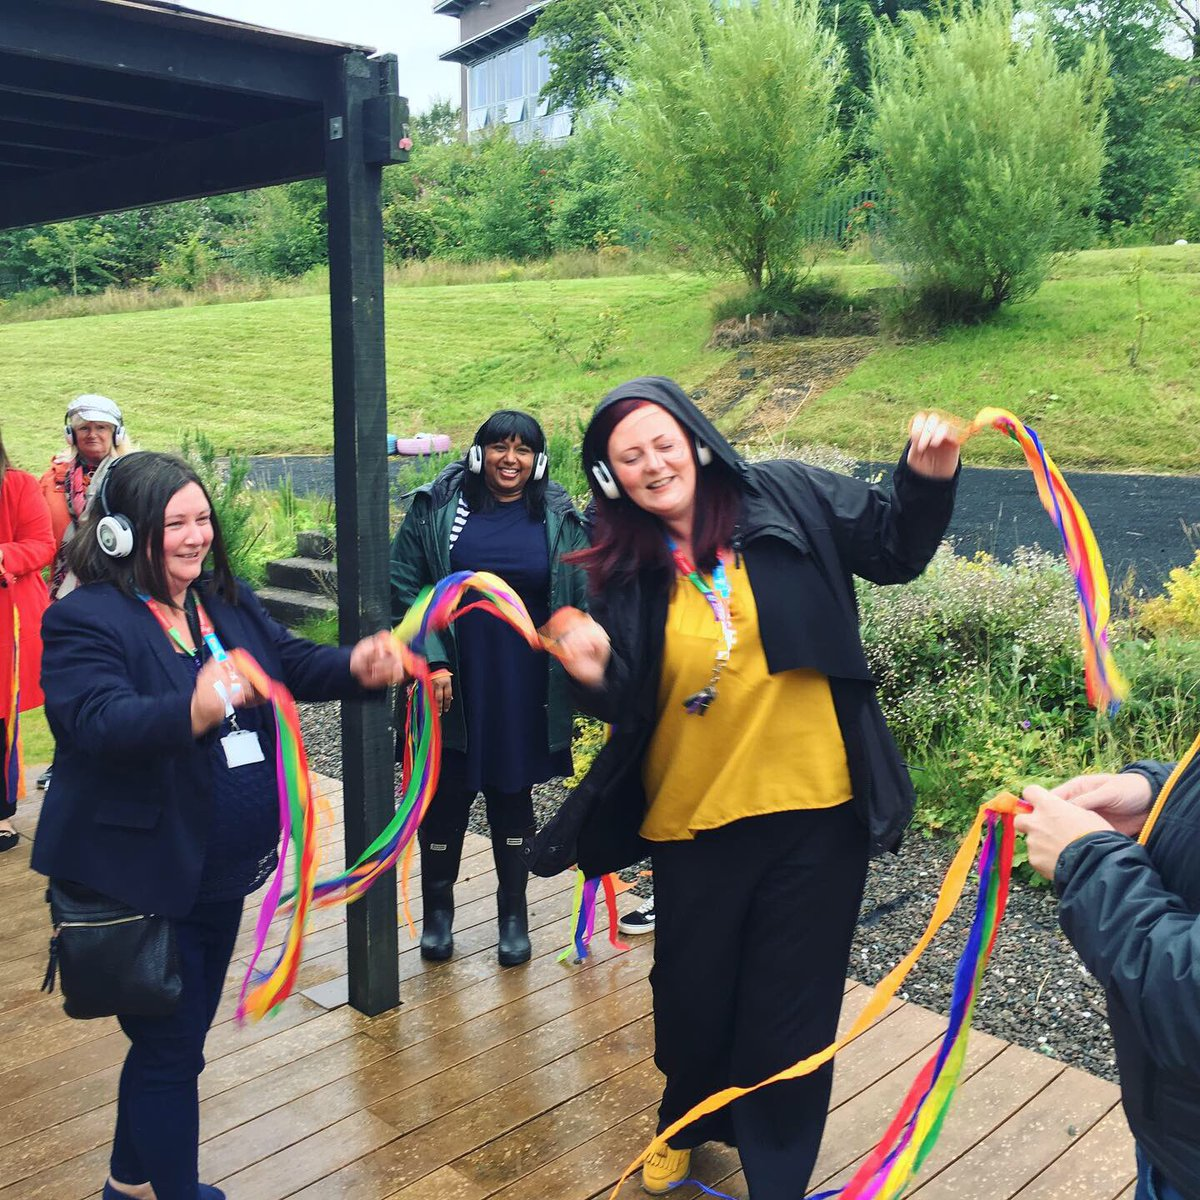 We had a brilliant day today at Branston Courts Annual BBQ, we danced (despite the rain), ate well and celebrated the team who just completed the west highland way! Well done everyone  #positivechange #bbqweather<br>http://pic.twitter.com/cRjX5TZ7W2